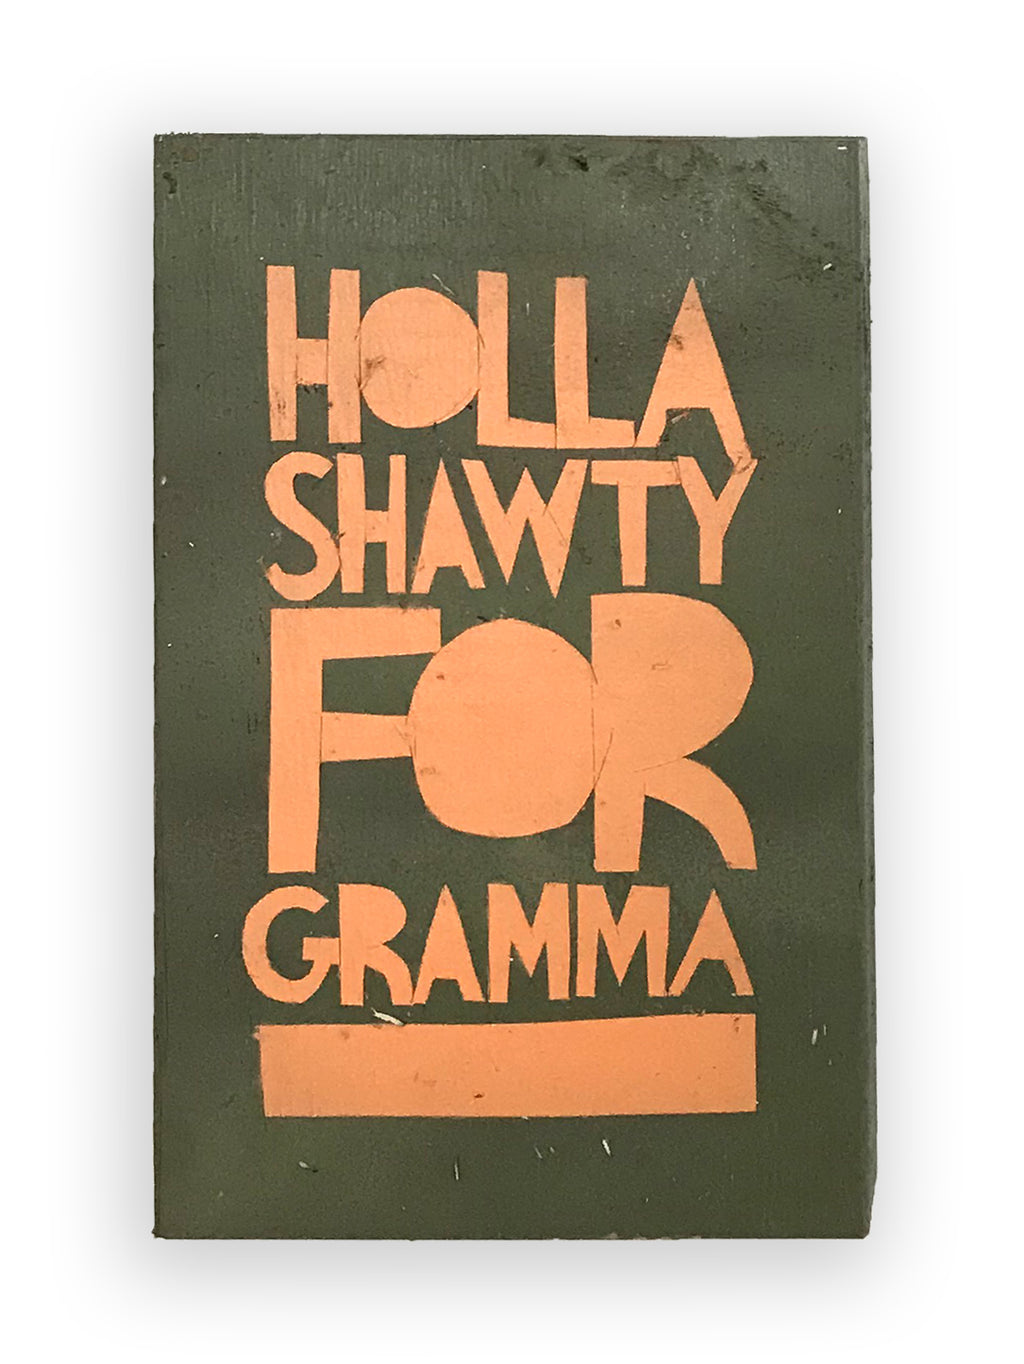 HOLLA SHAWTY FOR GRAMMA - Southern Dialect Series